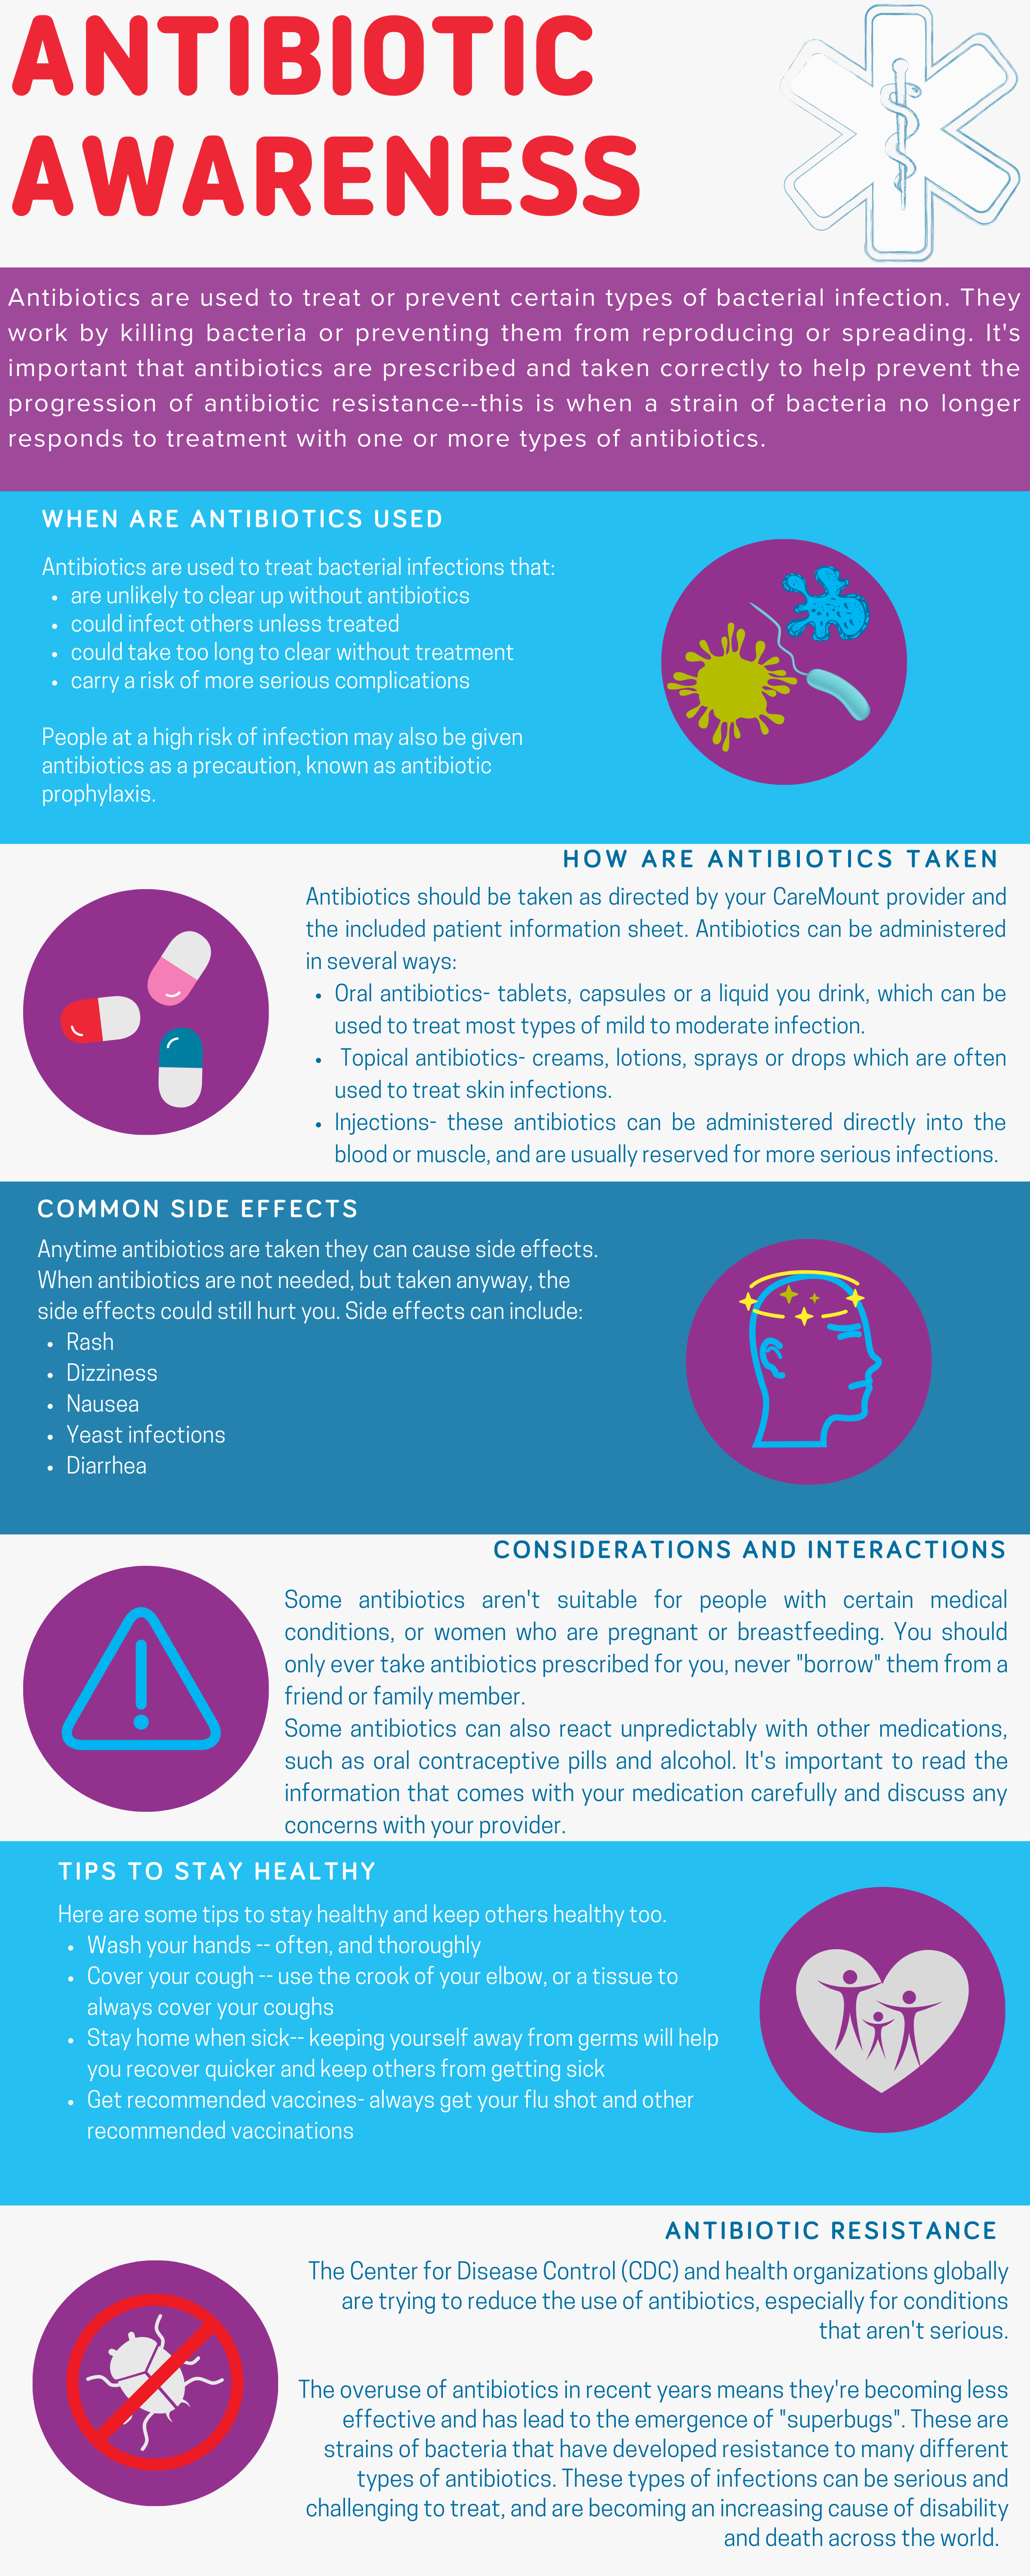 Antibiotic facts in the form of an infographic